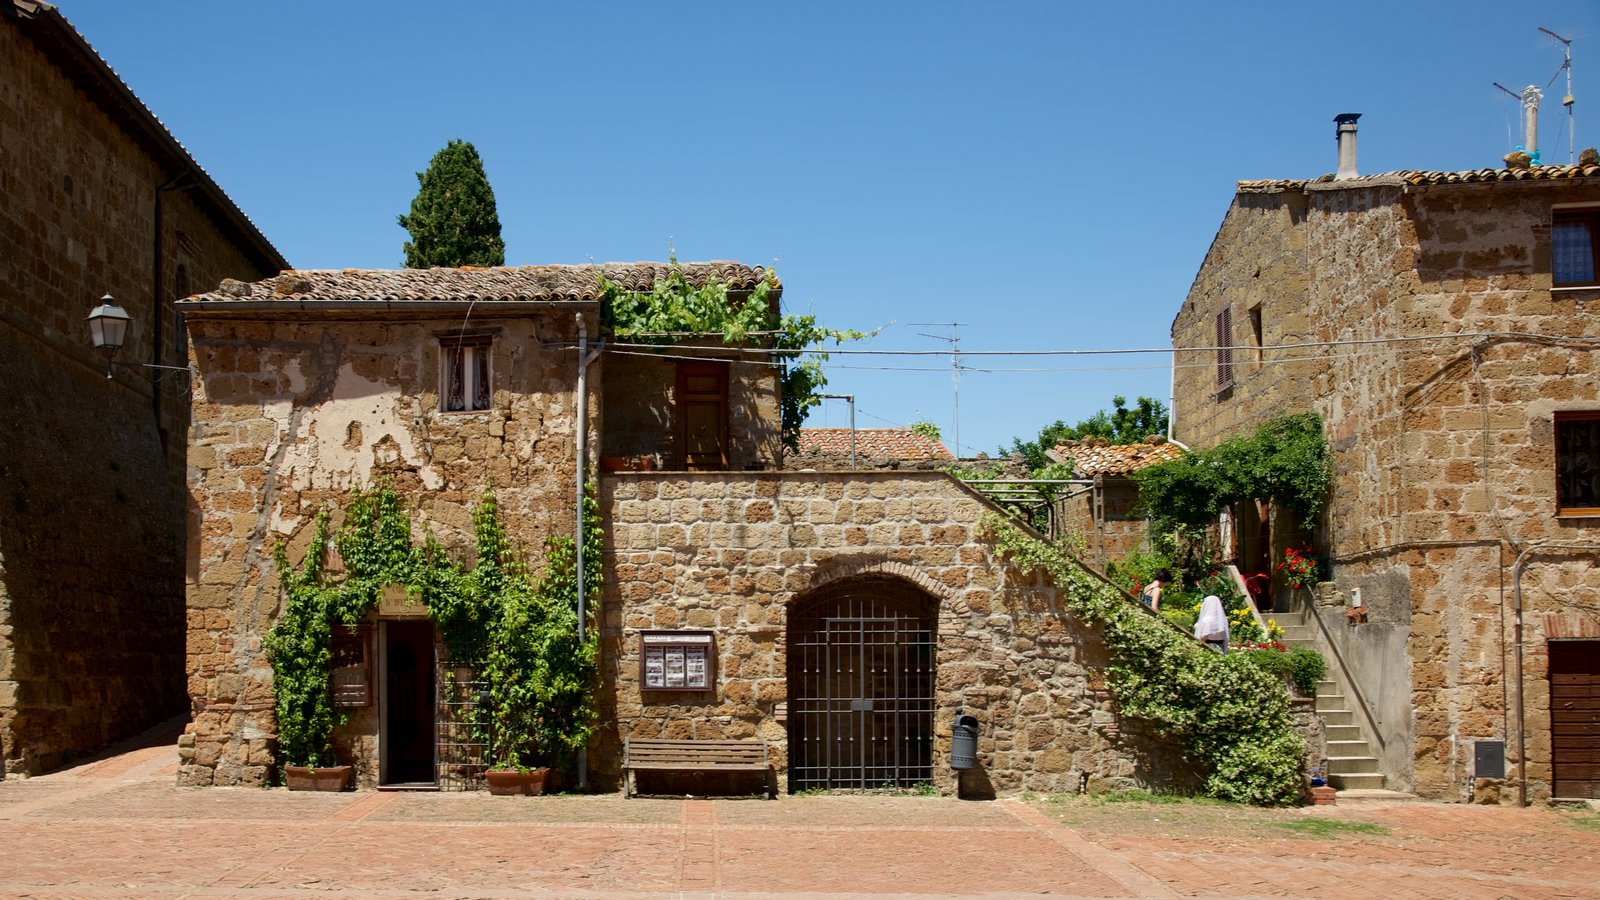 Sovana showing heritage architecture